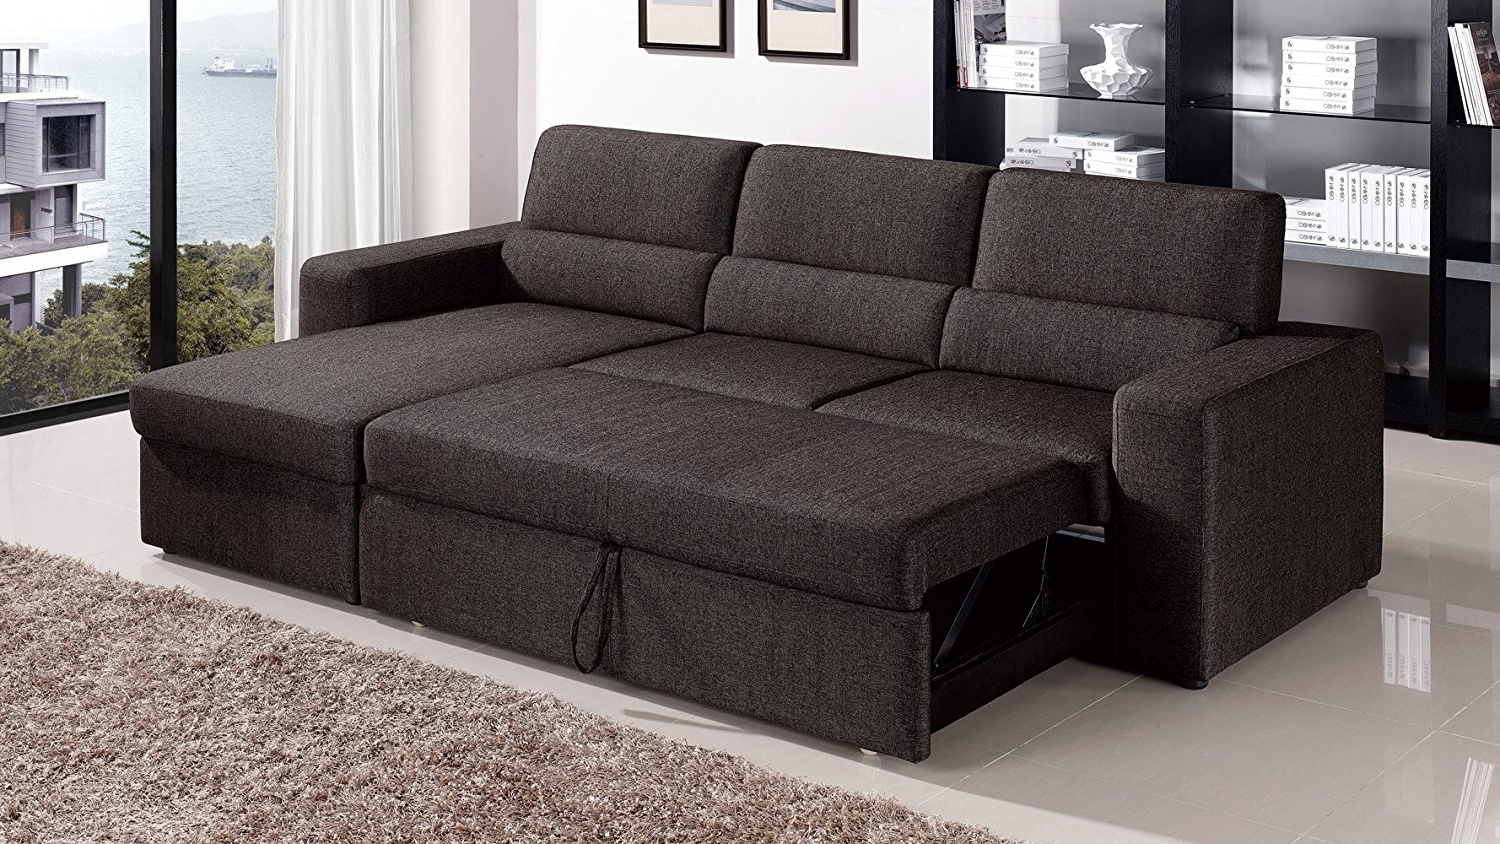 Amazon: Black/brown Clubber Sleeper Sectional Sofa – Right With Well Known Sectional Sleeper Sofas With Chaise (View 11 of 15)